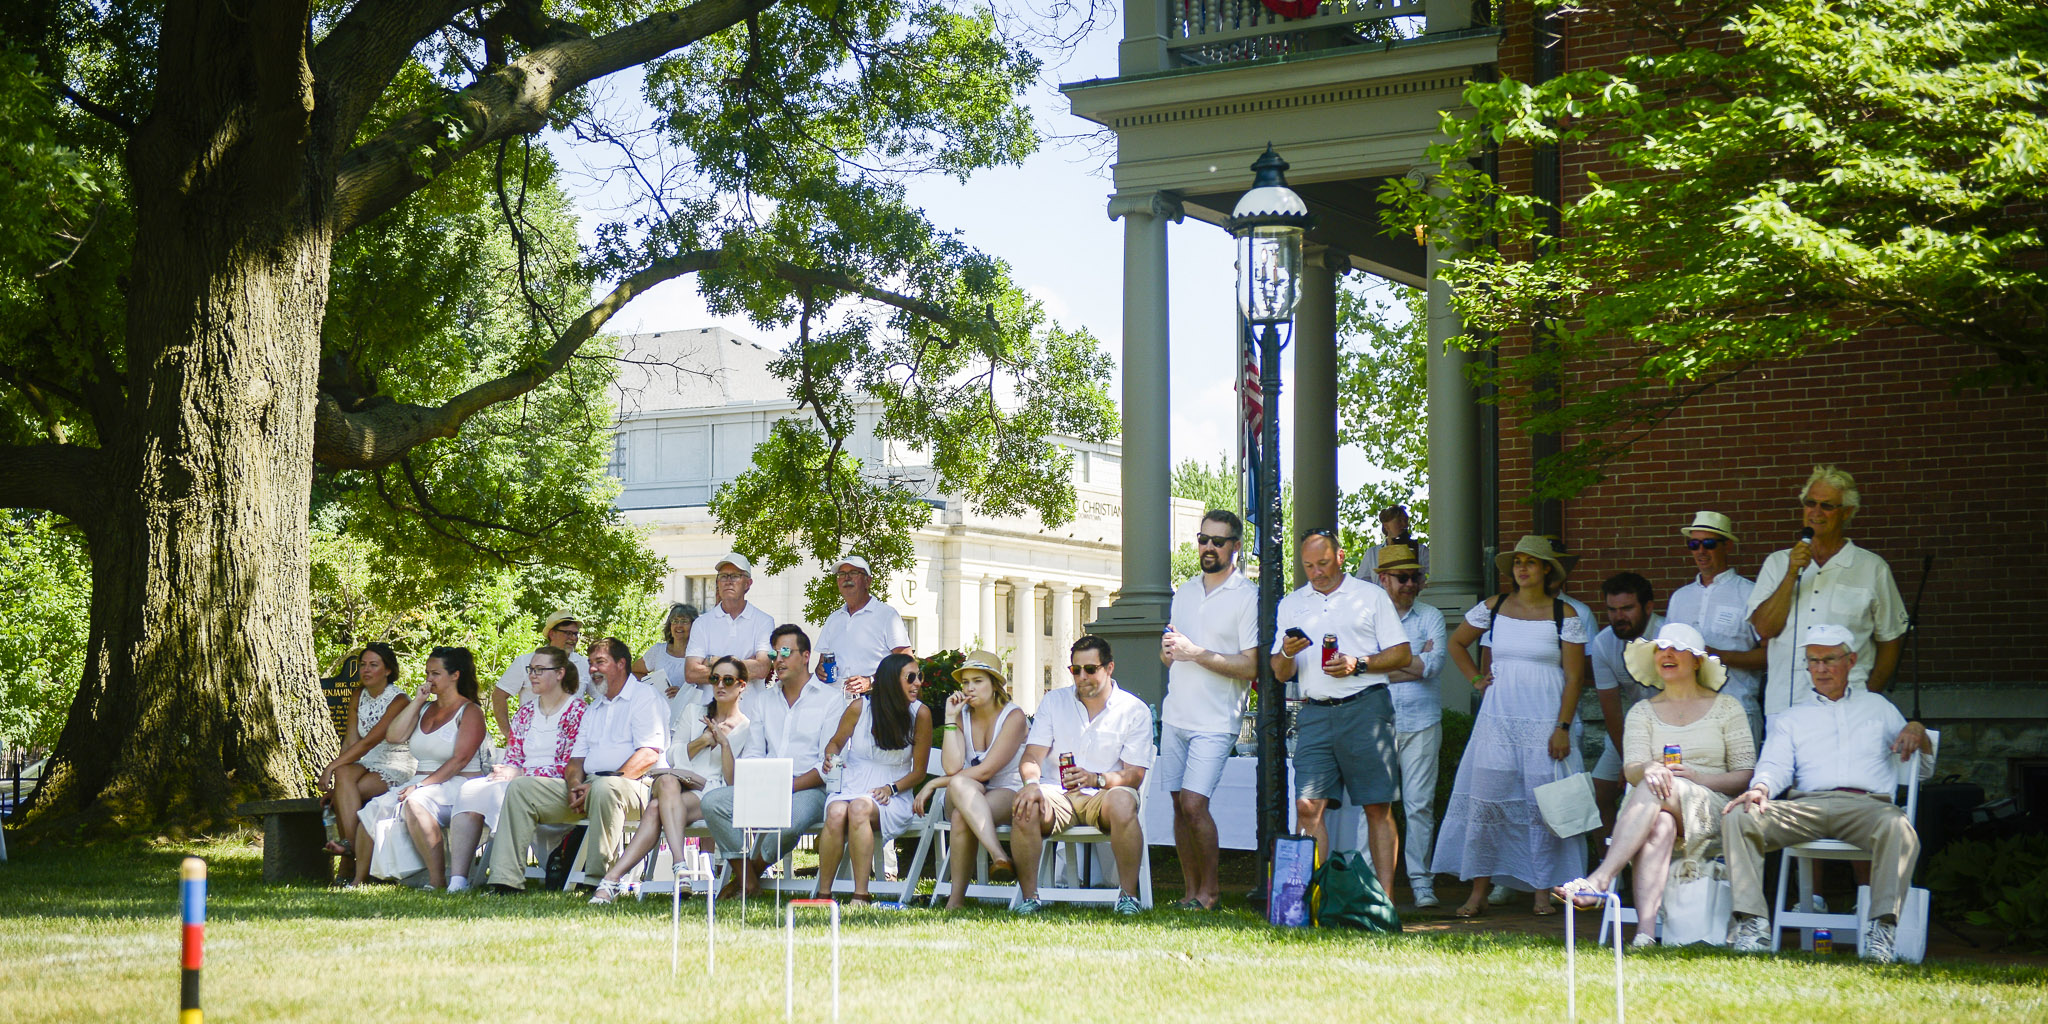 Photograph of people watching croquet